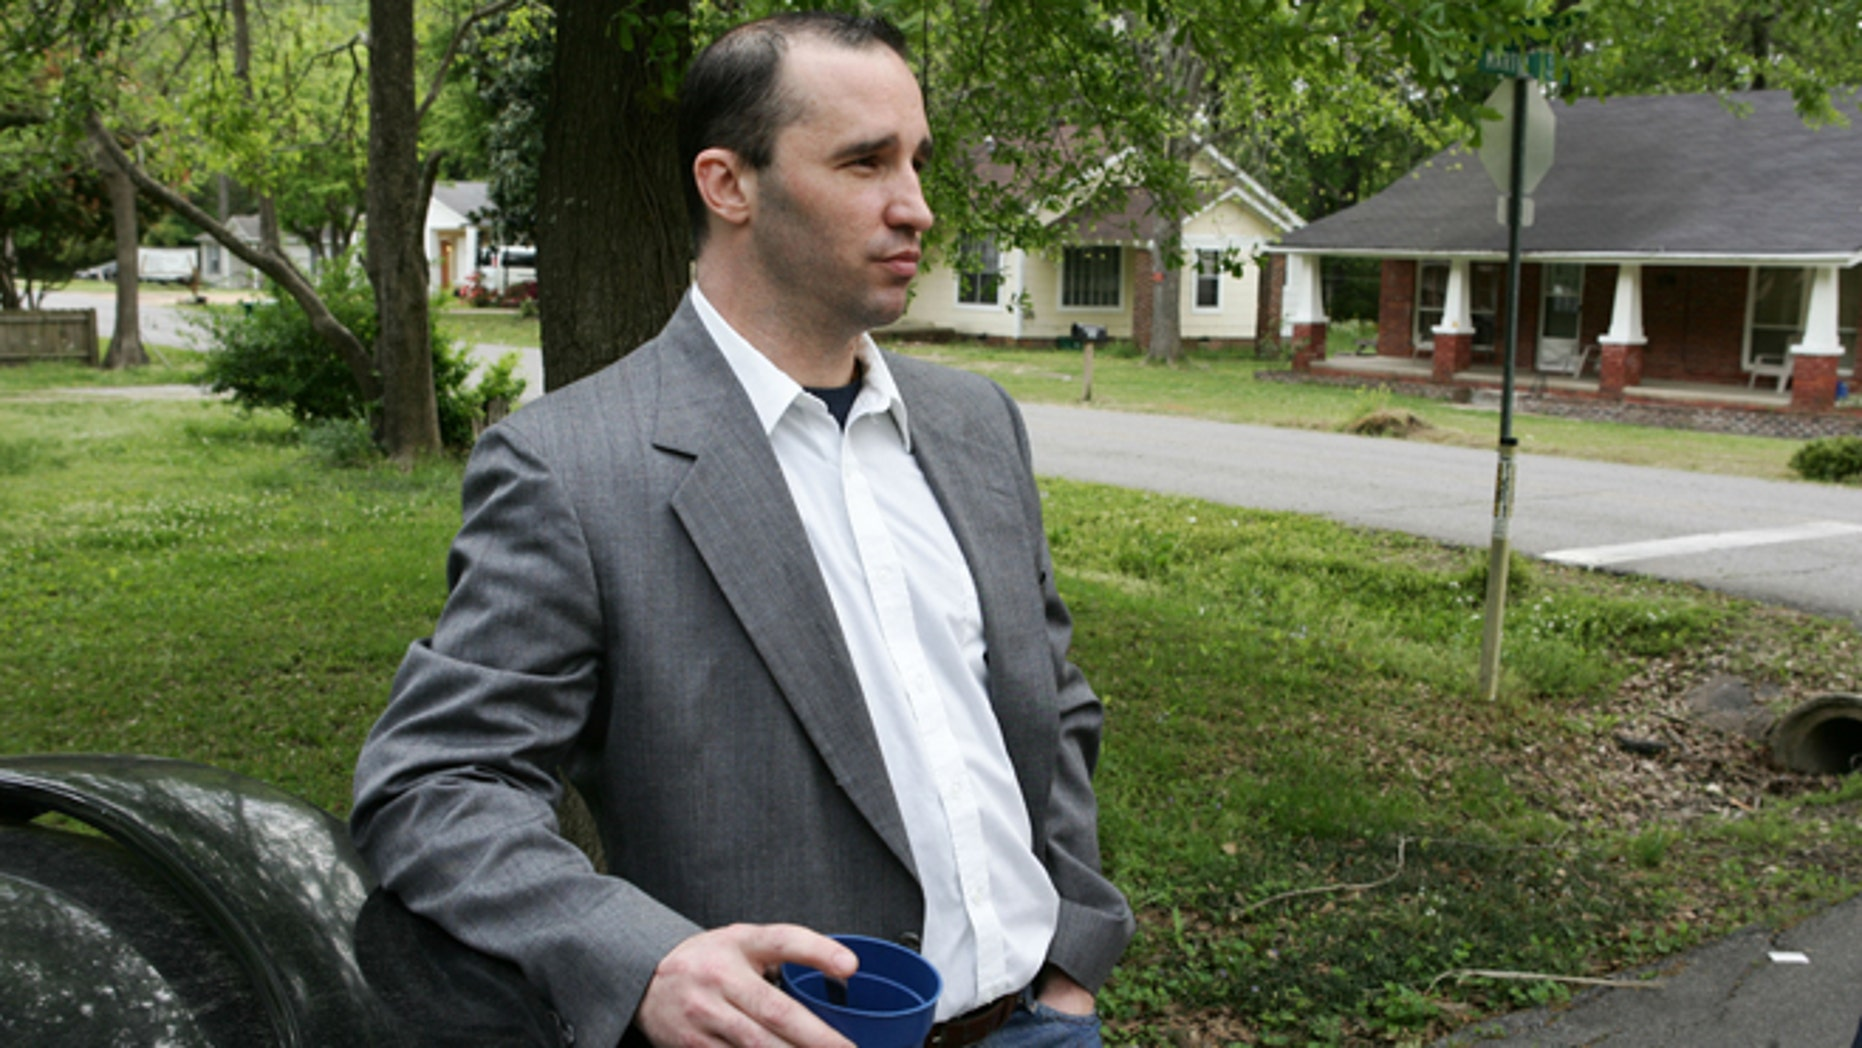 April 23, 2013: In this Tuesday file photo, Everett Dutschke stands in the street near his home in Tupelo, Miss., and waits for the FBI to arrive and search his home. Dutschke, charged with making and possessing ricin as part of the investigation into poison-laced letters sent to President Barack Obama and others was expected to appear in court Monday April 29, 2013.